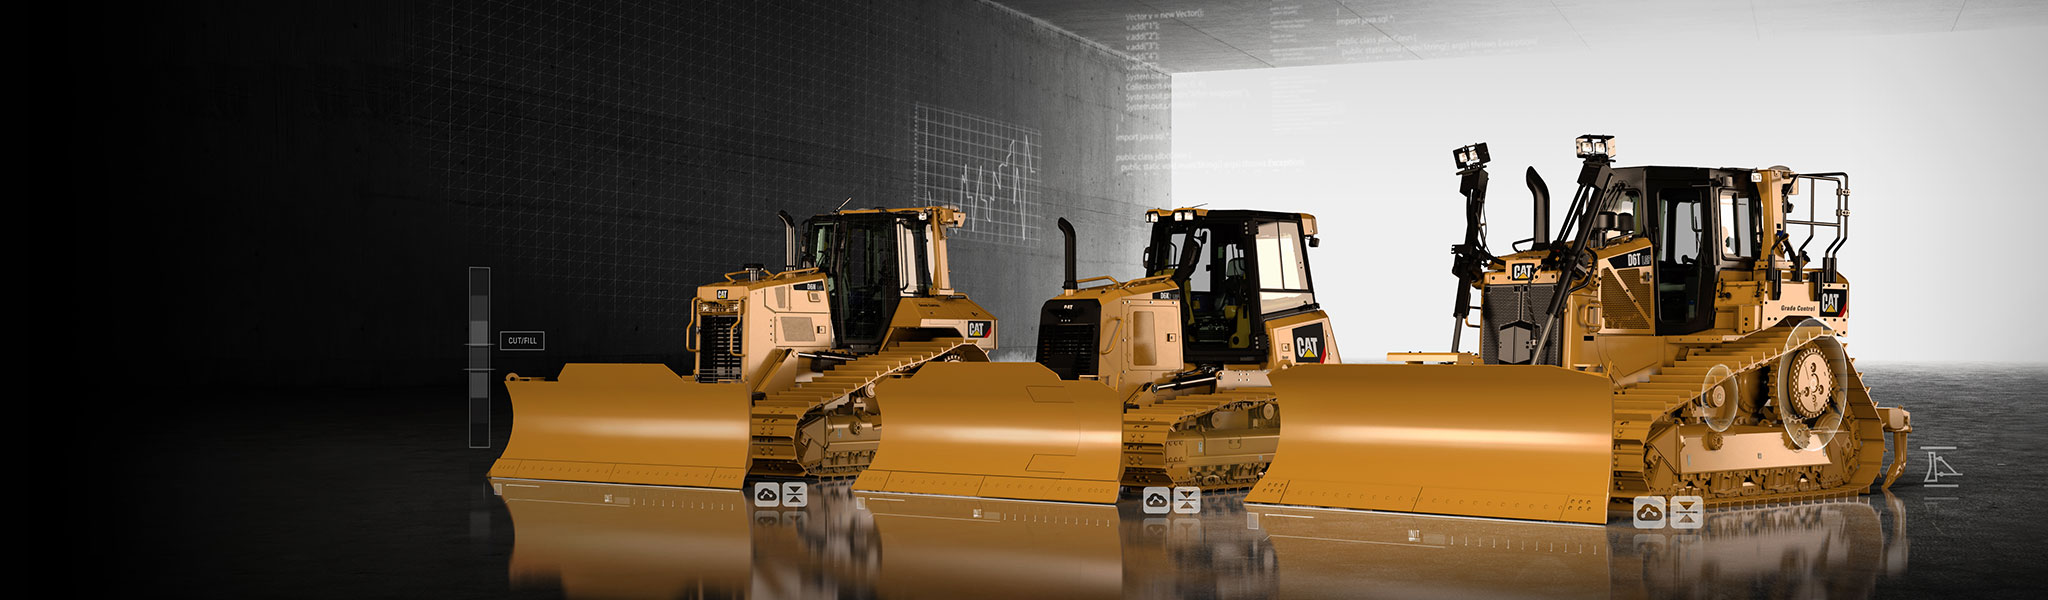 Cat All Day CAT® DOZERS: Ready for What's Next - Cat All Day